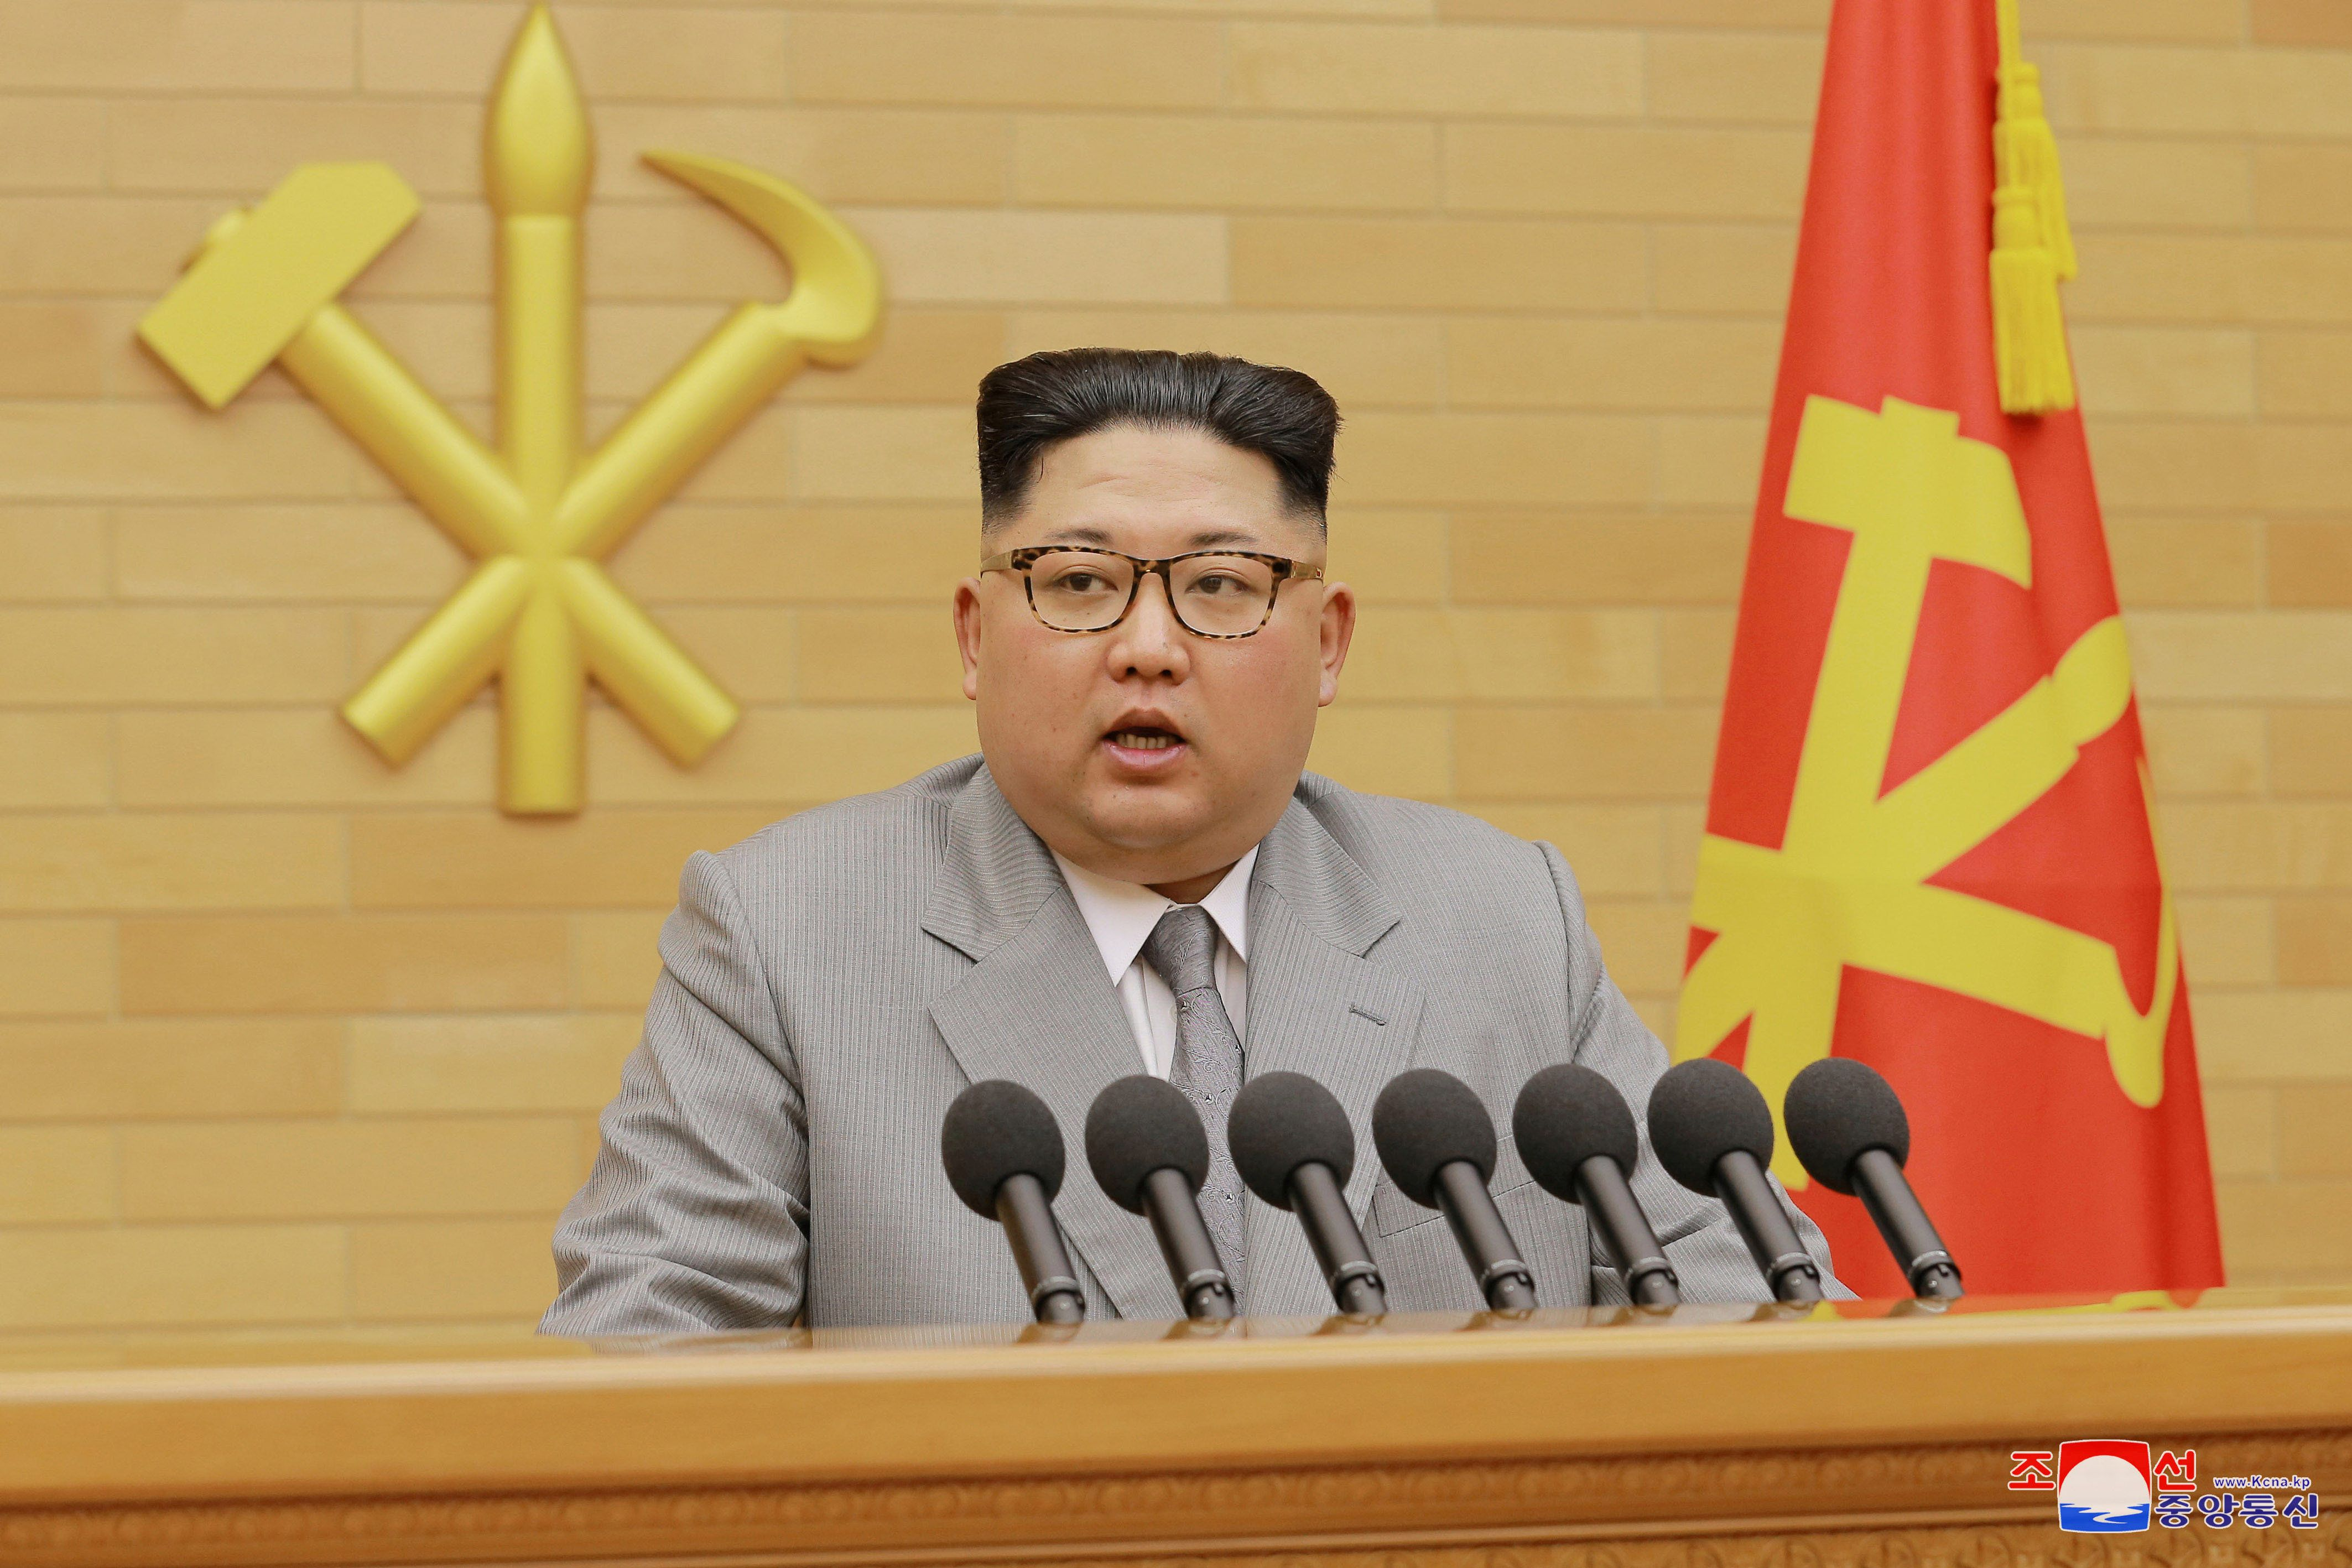 Kim Jong-Un Celebrates New Year By Revealing 'Nuclear Button' On His